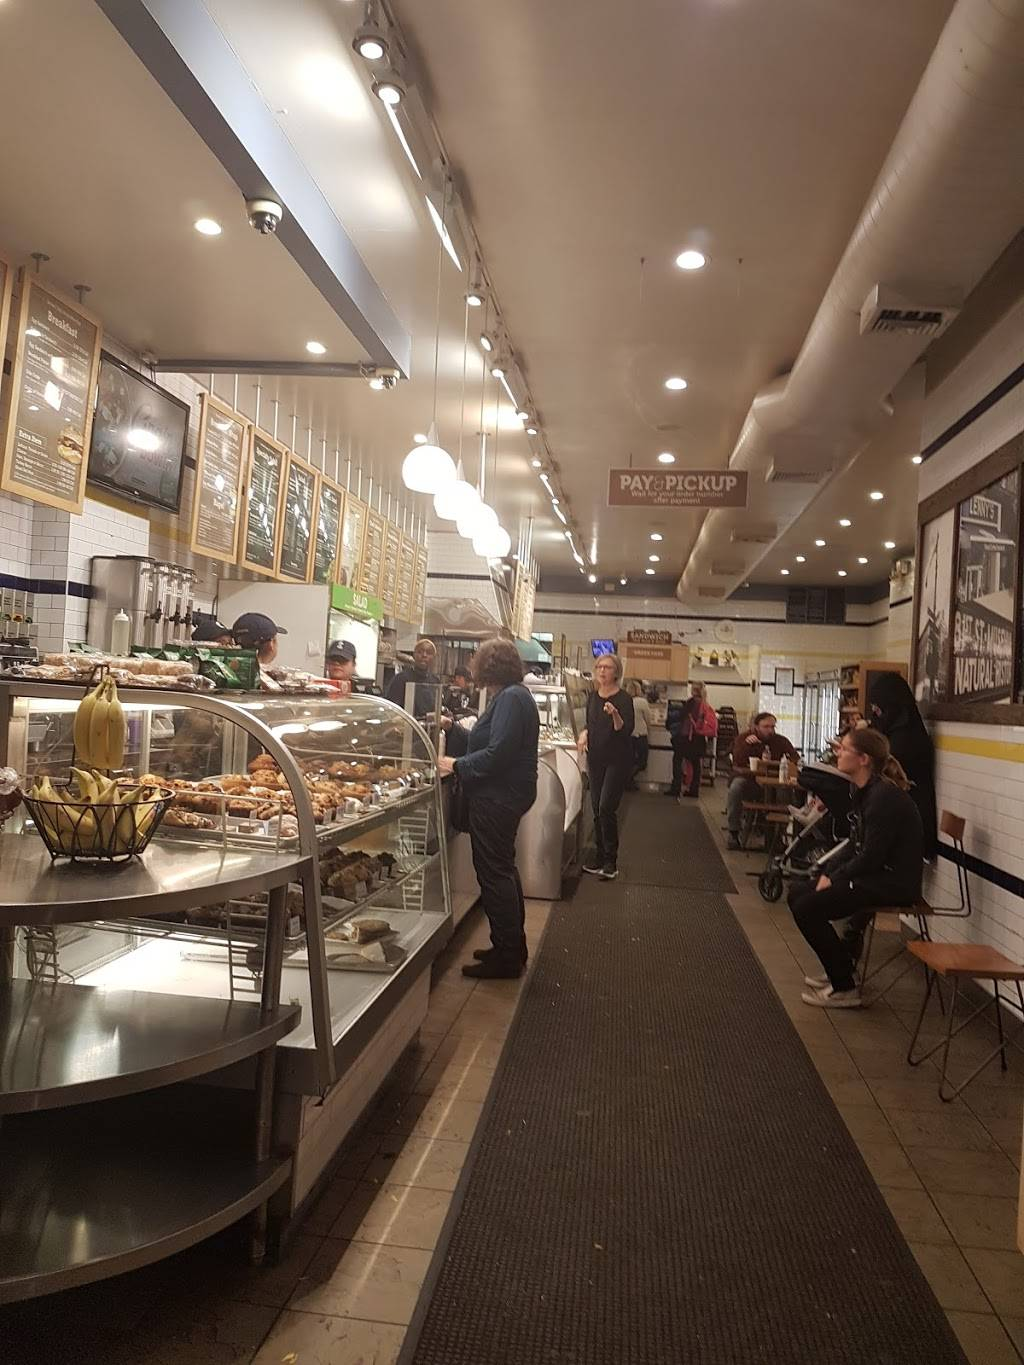 Lennys Bagels | bakery | 2601 Broadway, New York, NY 10025, USA | 2122220410 OR +1 212-222-0410